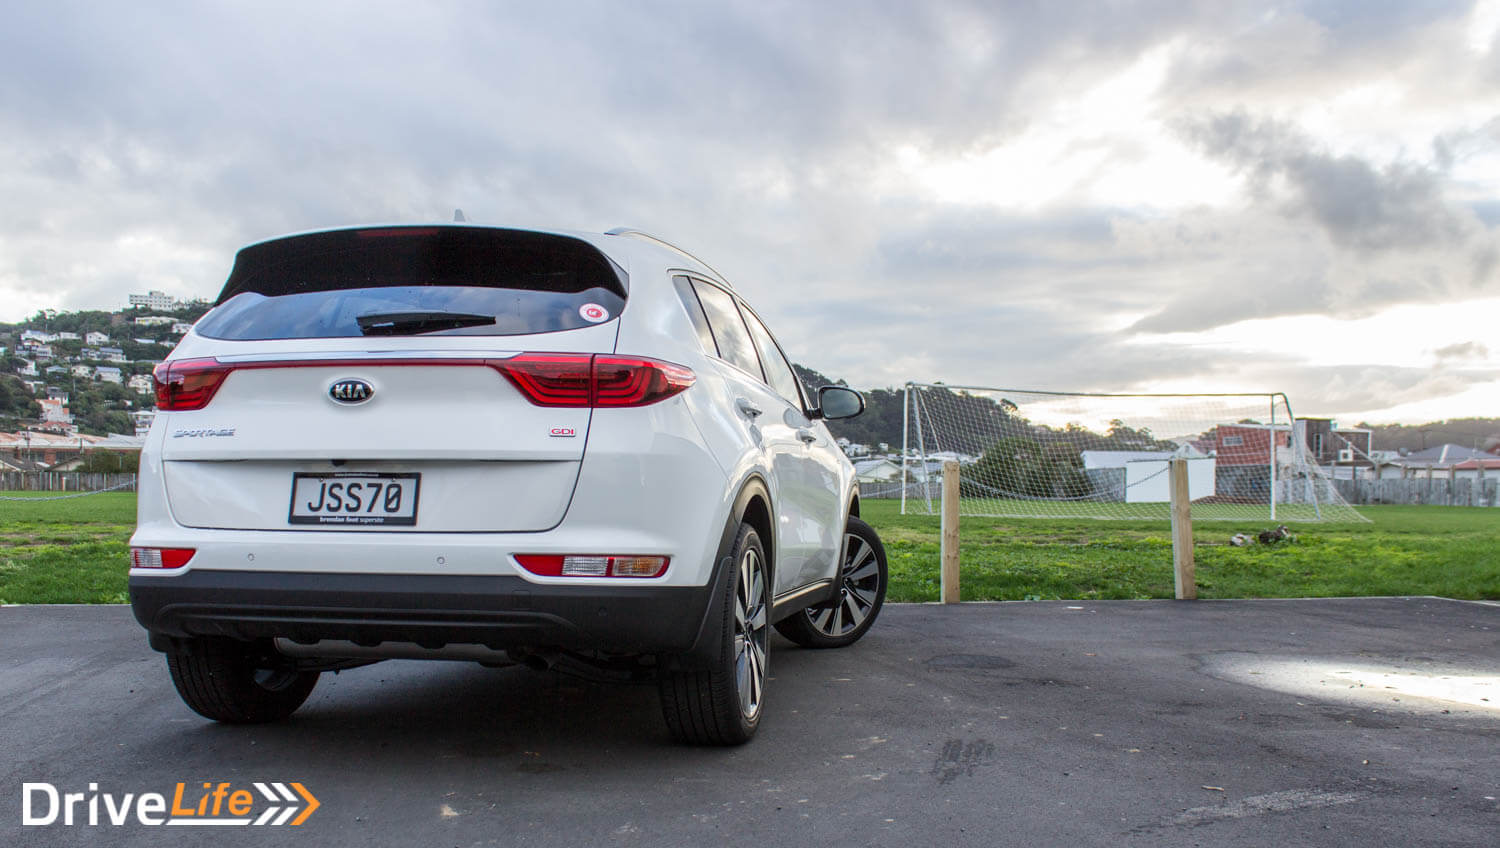 drive-life-nz-car-review-kia-sportage-2016-11